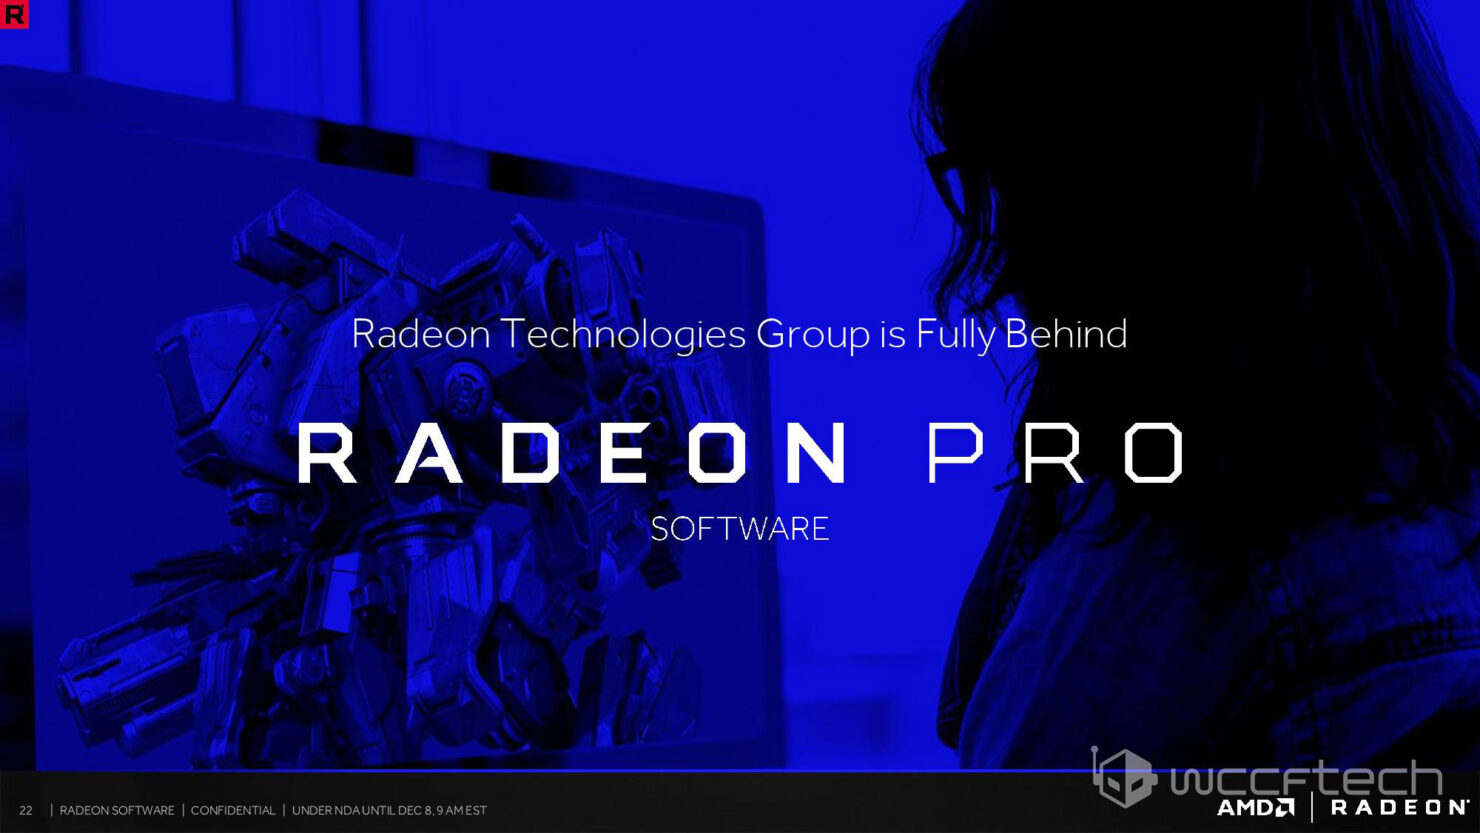 radeon-software-crimson-relive-nda-only-confidential-v4-page-022-copy